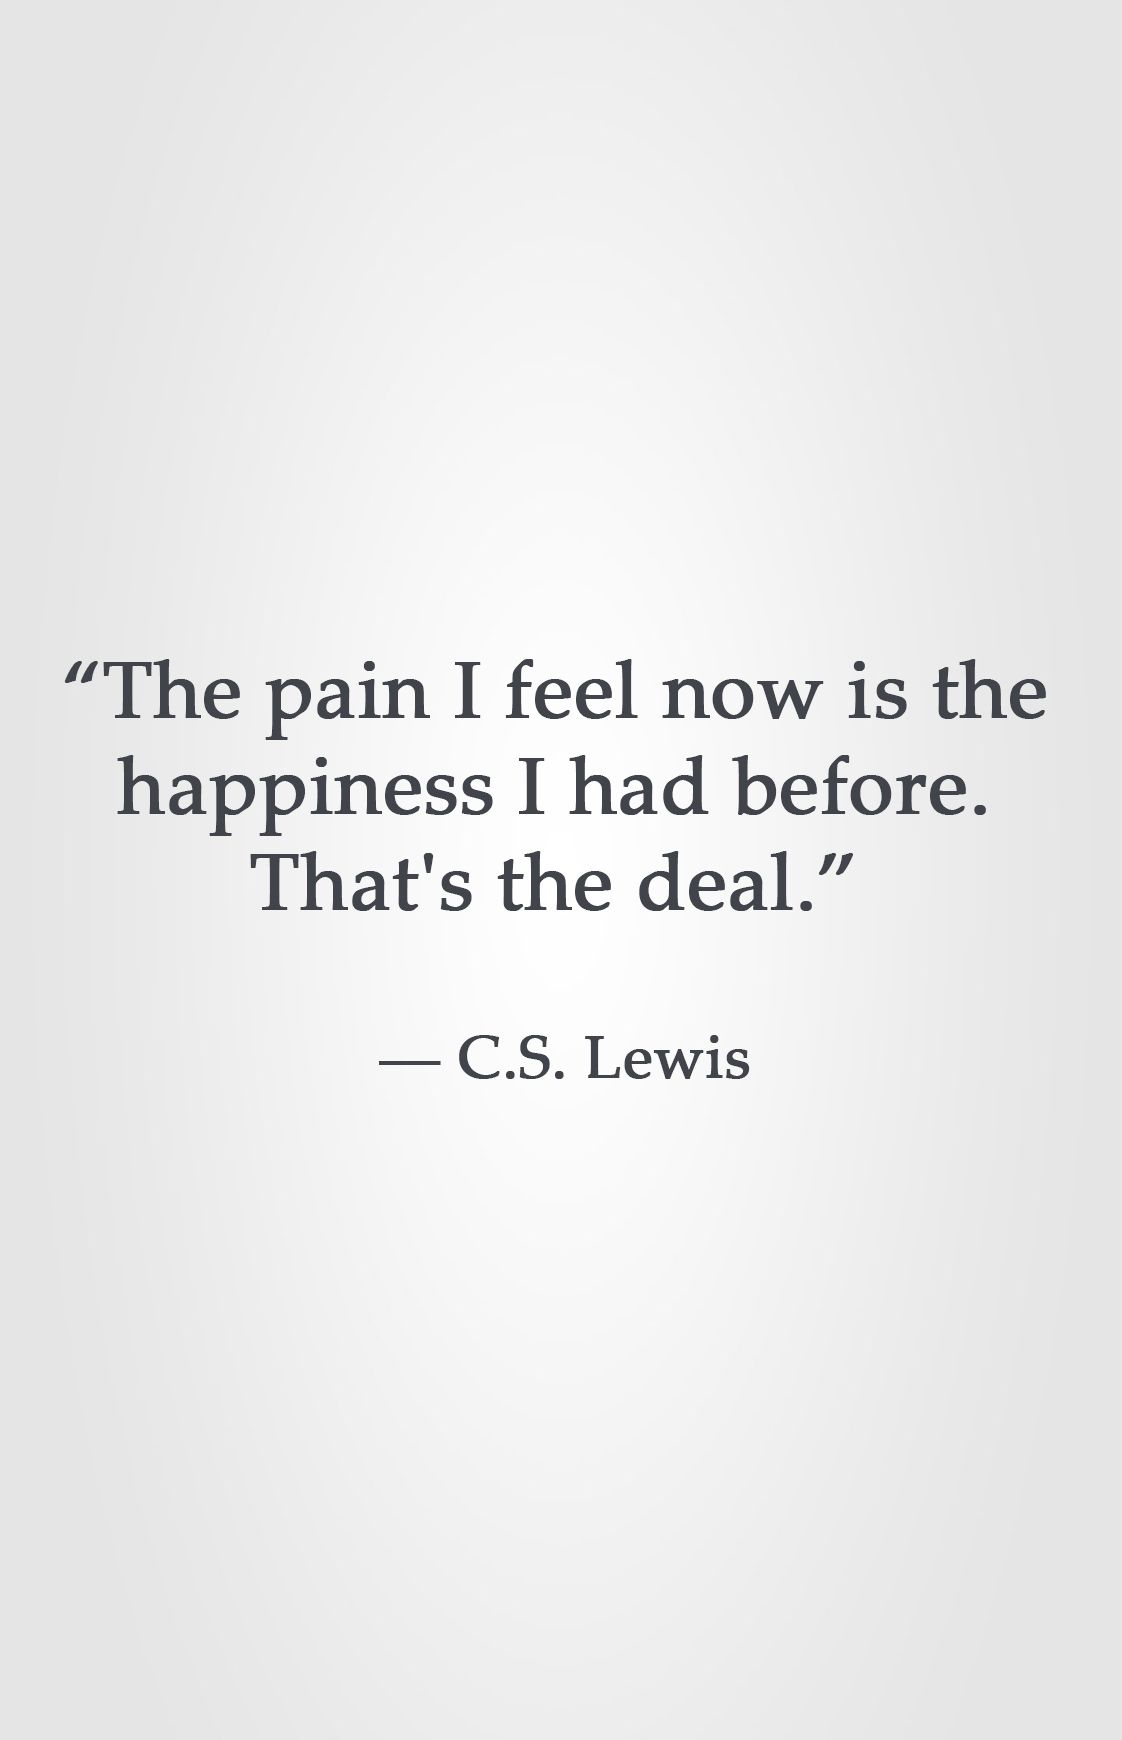 The Pain I Feel Now Is The Happiness I Had Before Thats The Deal